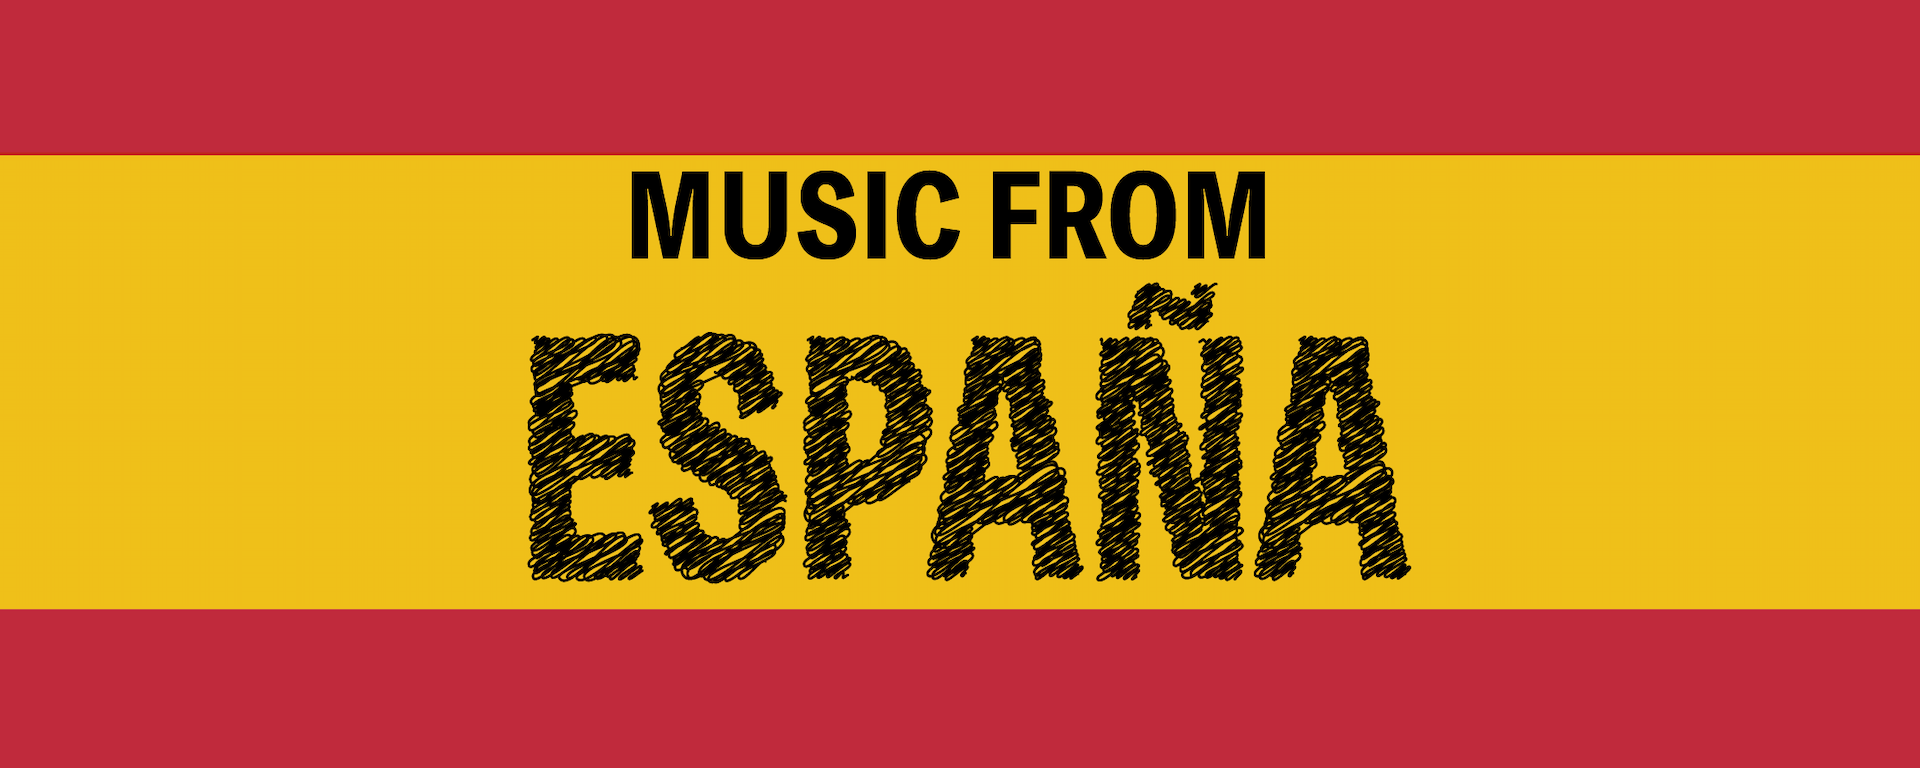 """words """"Music from España"""" with Spain flag colors"""